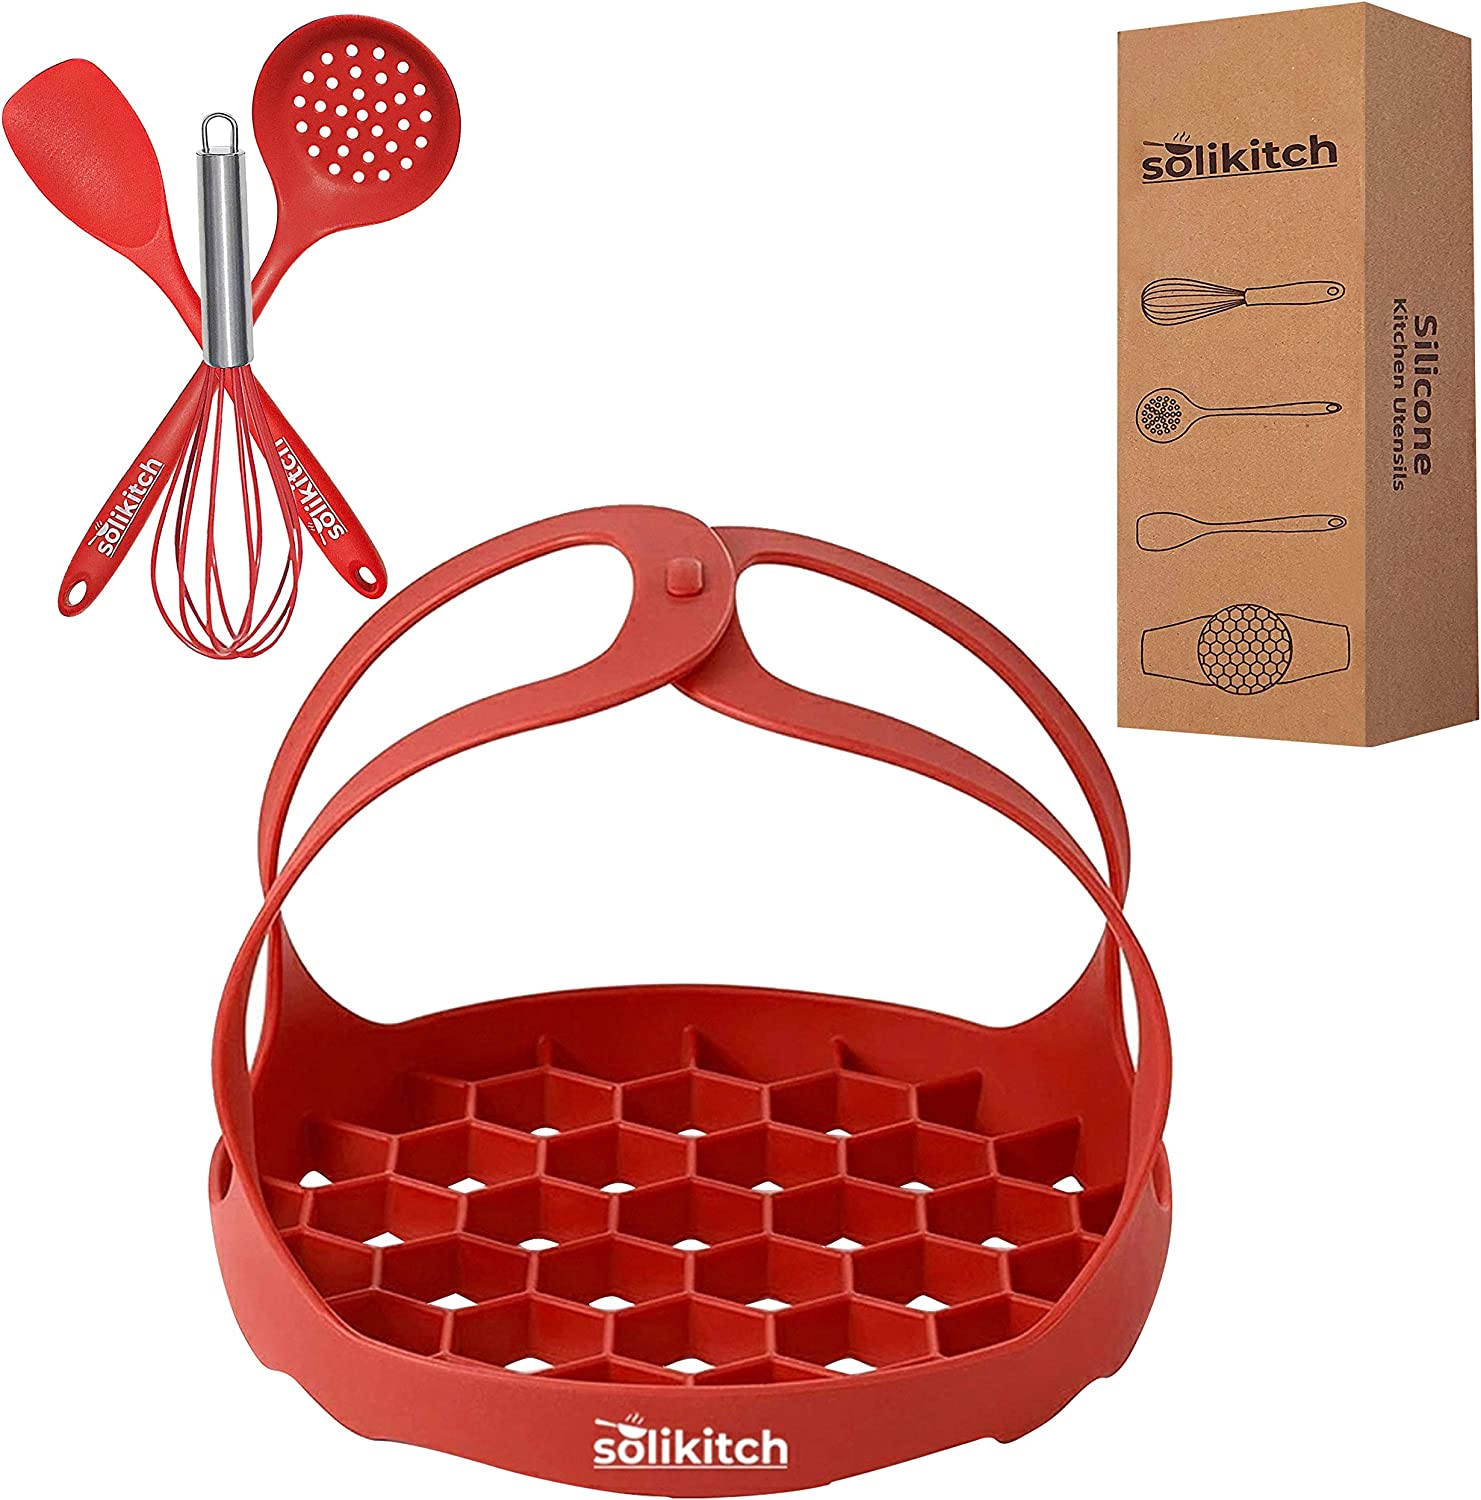 Solikitch Pressure Cooker Accessories – Silicone Bakeware Sling and Tools Set – 4 pcs Pressure Cooking Accessories with Sling, Whisk, Spatula, and Skimmer – Food-Grade Silicone – Red